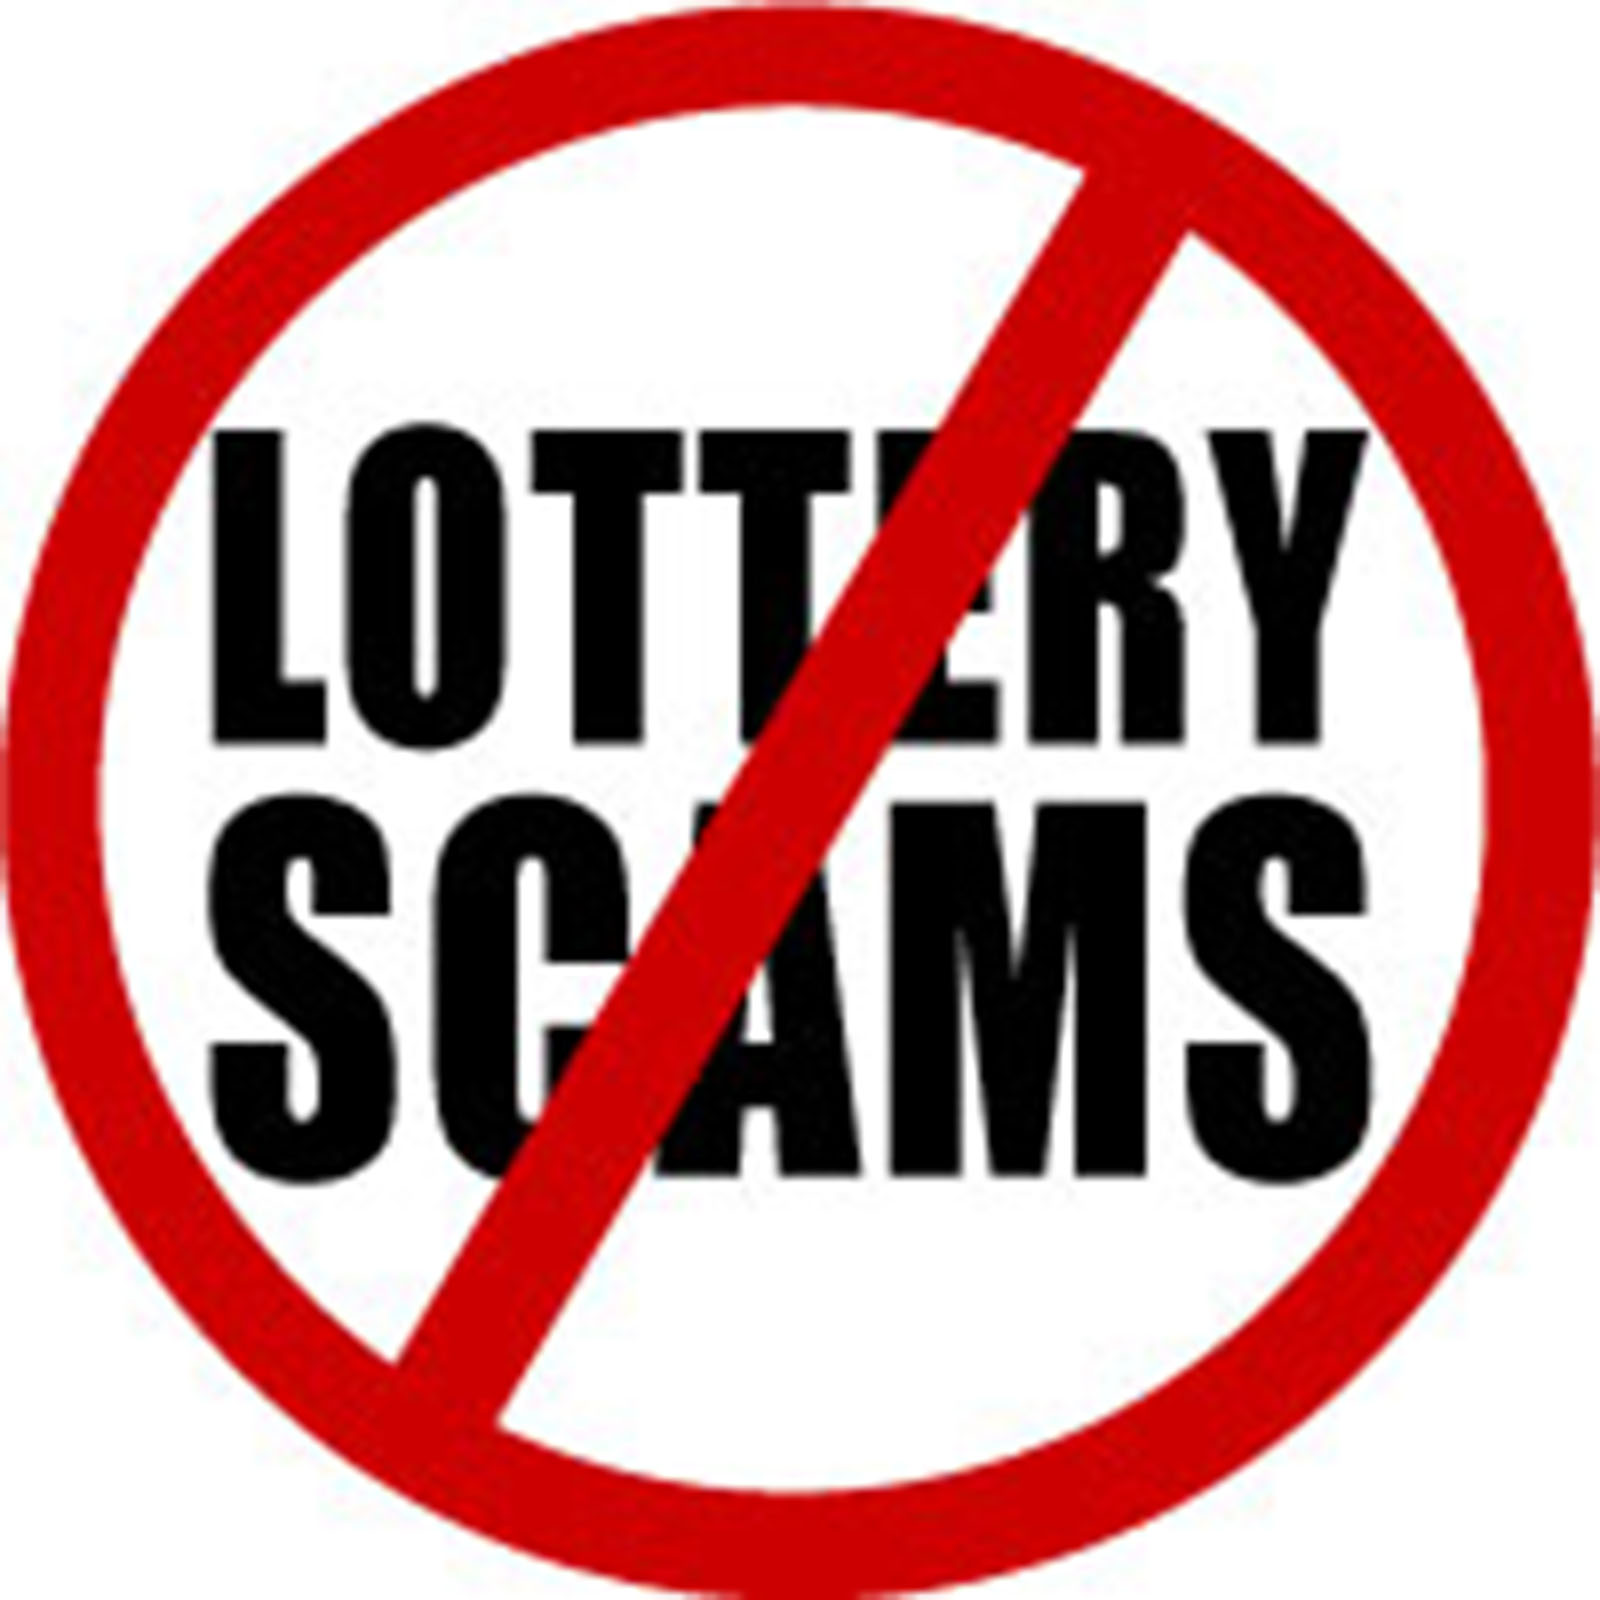 Shady Lines Used in Latin Lotto Scam